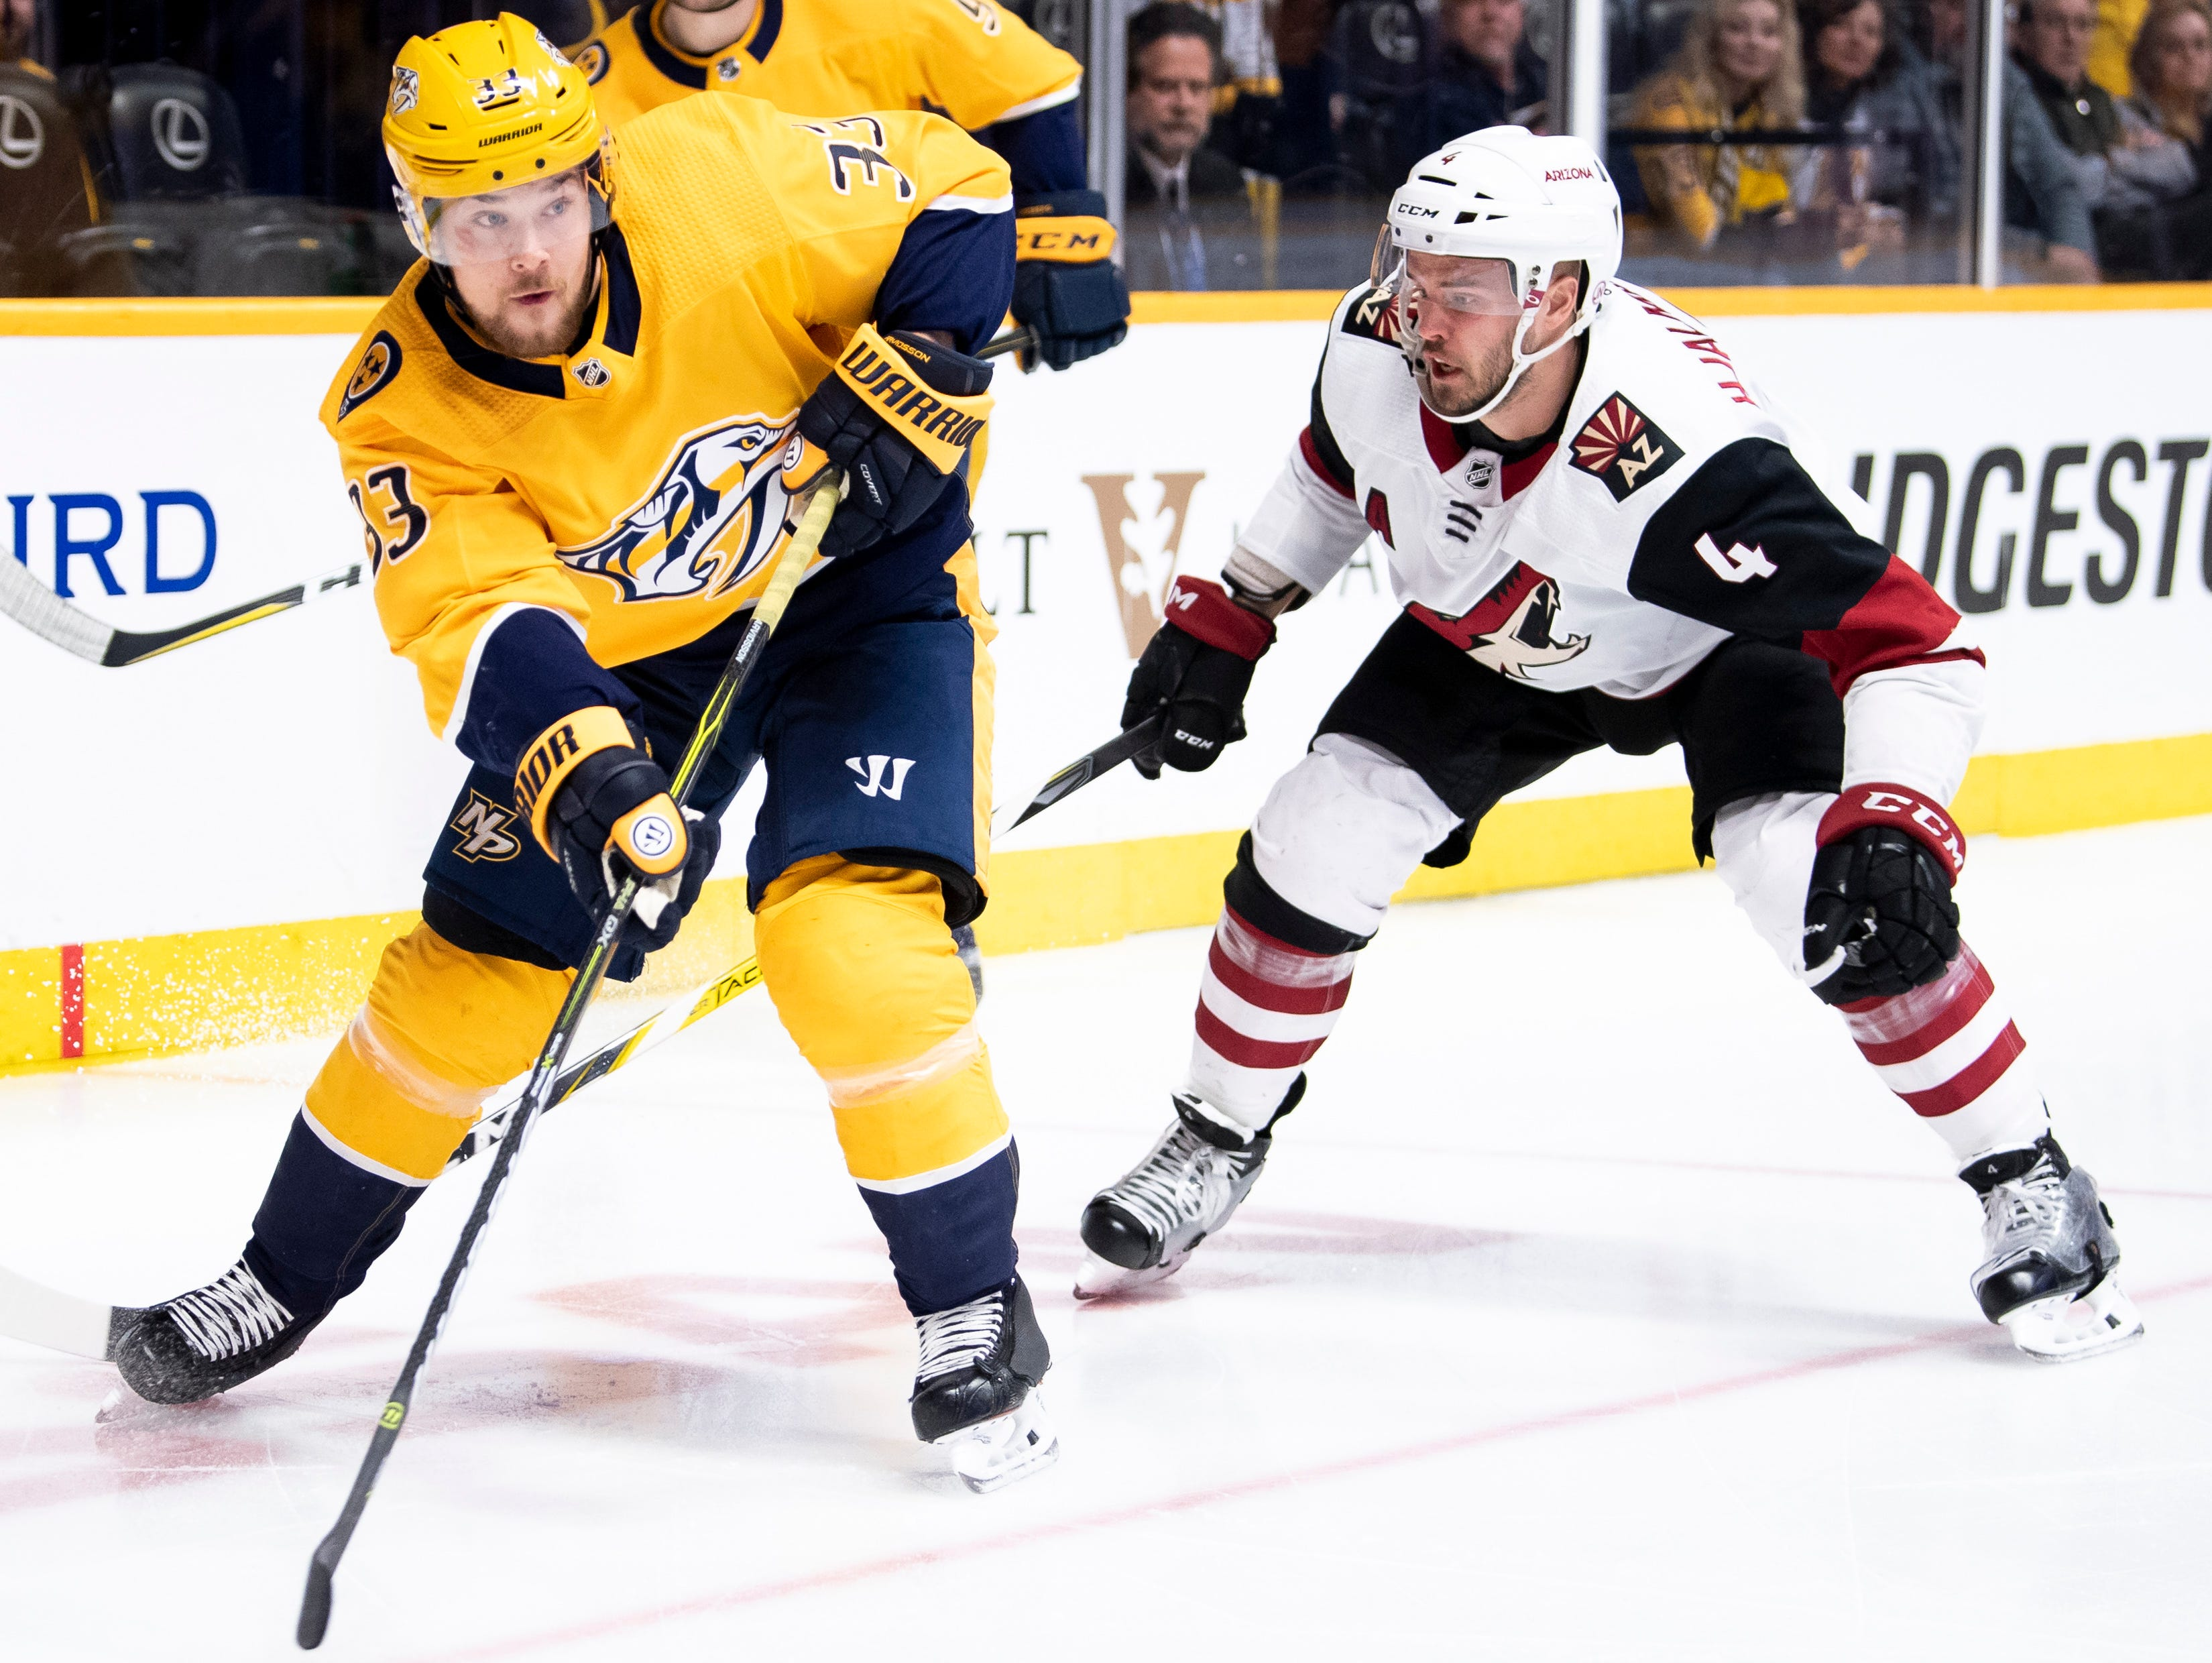 Nashville Predators right wing Viktor Arvidsson (33) maneuvers past Arizona Coyotes defenseman Niklas Hjalmarsson (4) during the first period at Bridgestone Arena in Nashville, Tenn., Tuesday, Feb. 5, 2019.